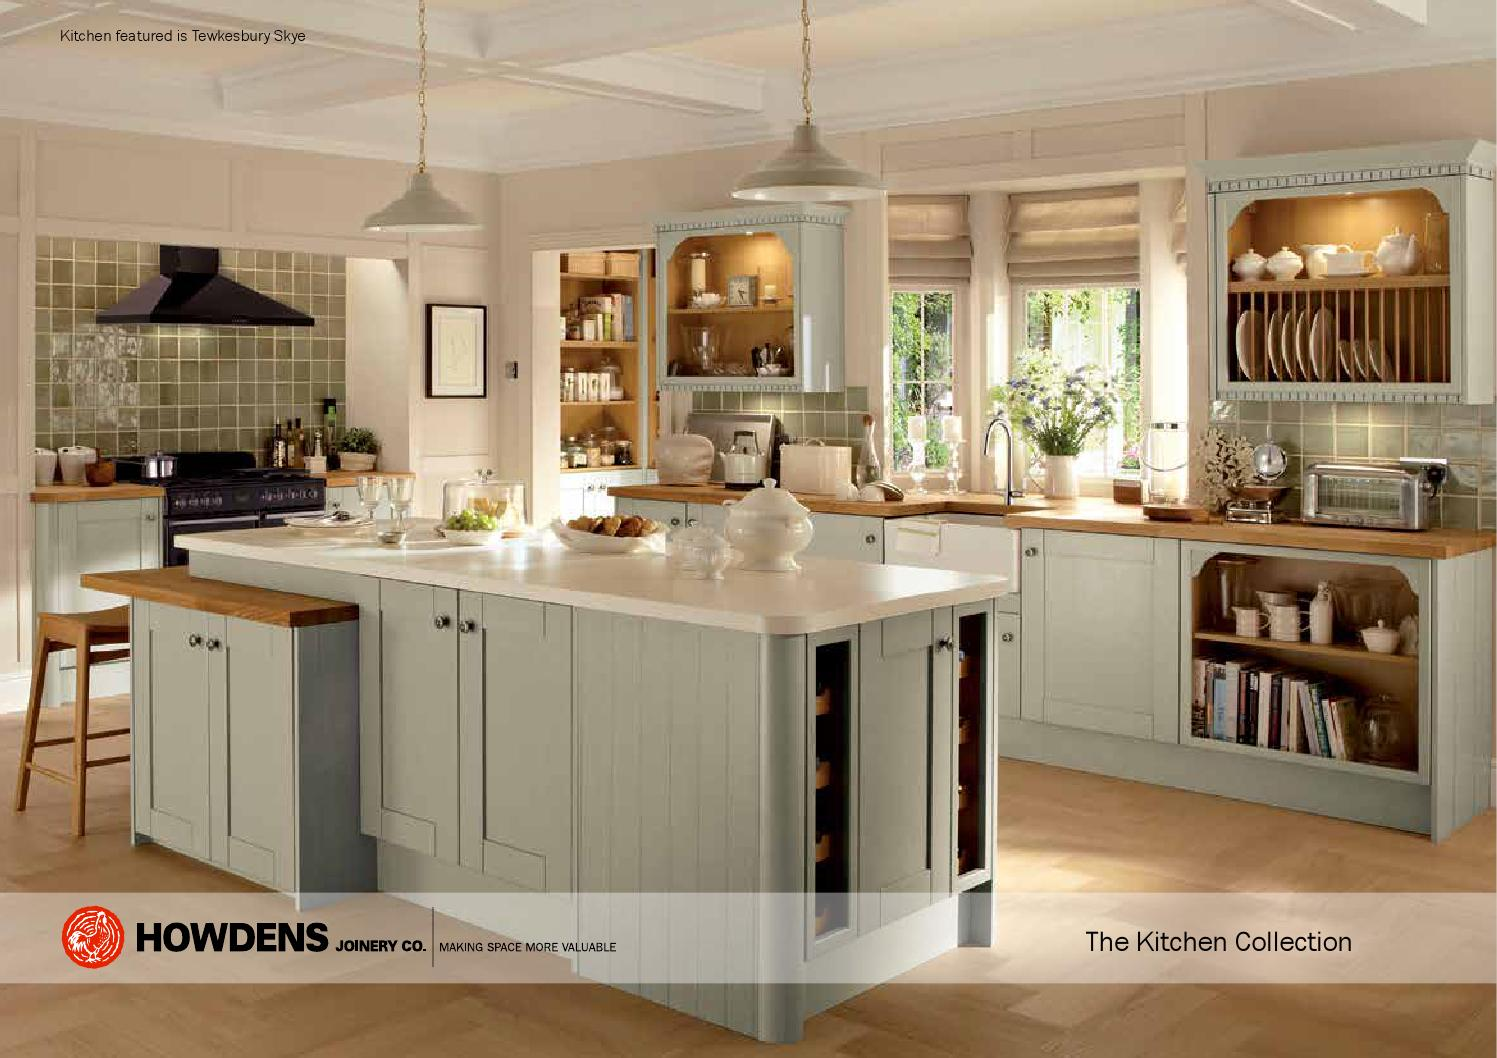 howdens kitchen design kitchen collection brochure by jskproperty issuu 1745